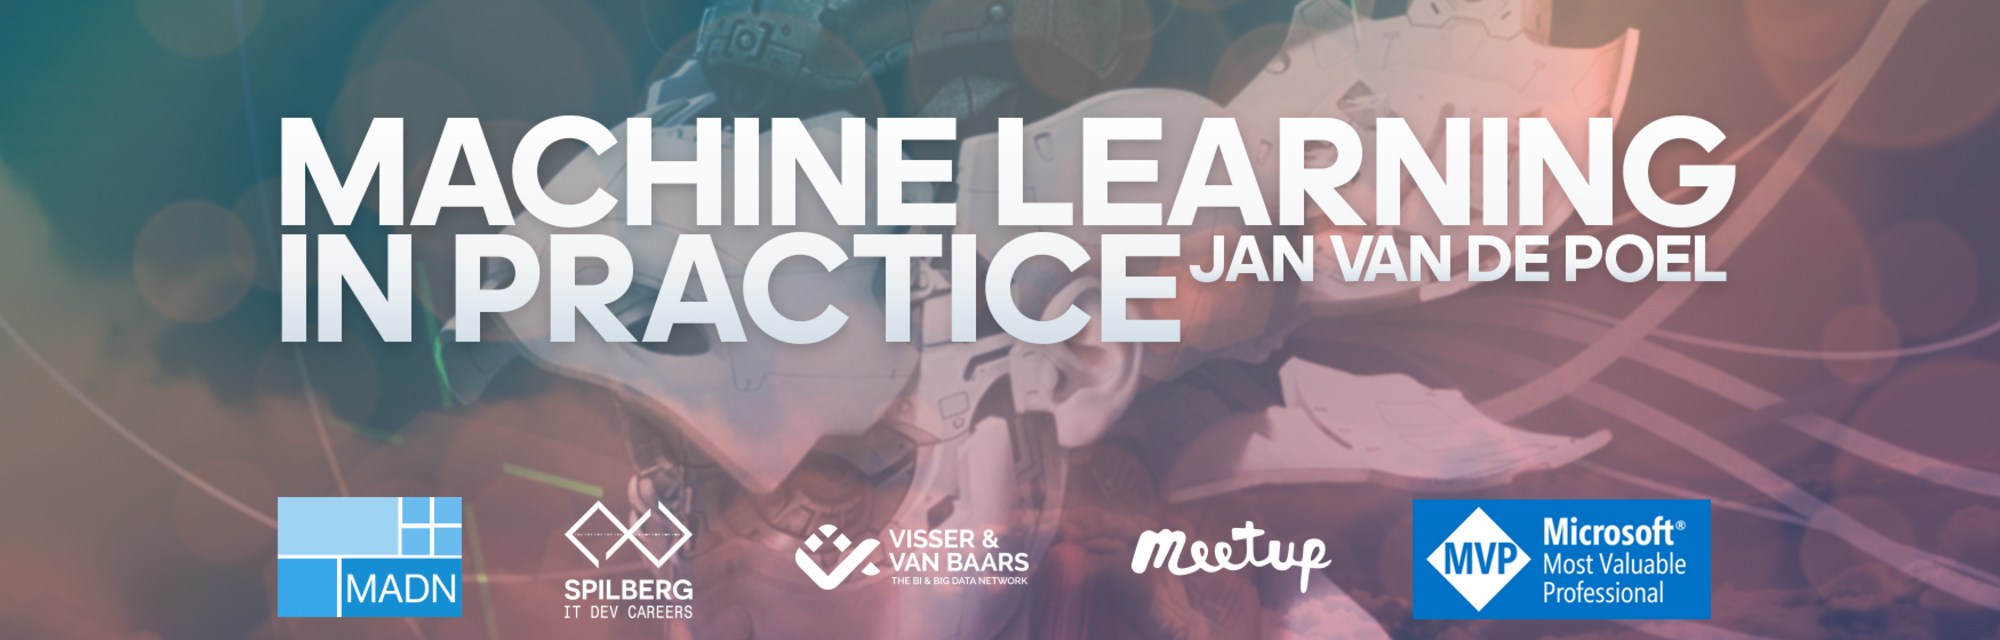 Event: Machine Learning in Practice!